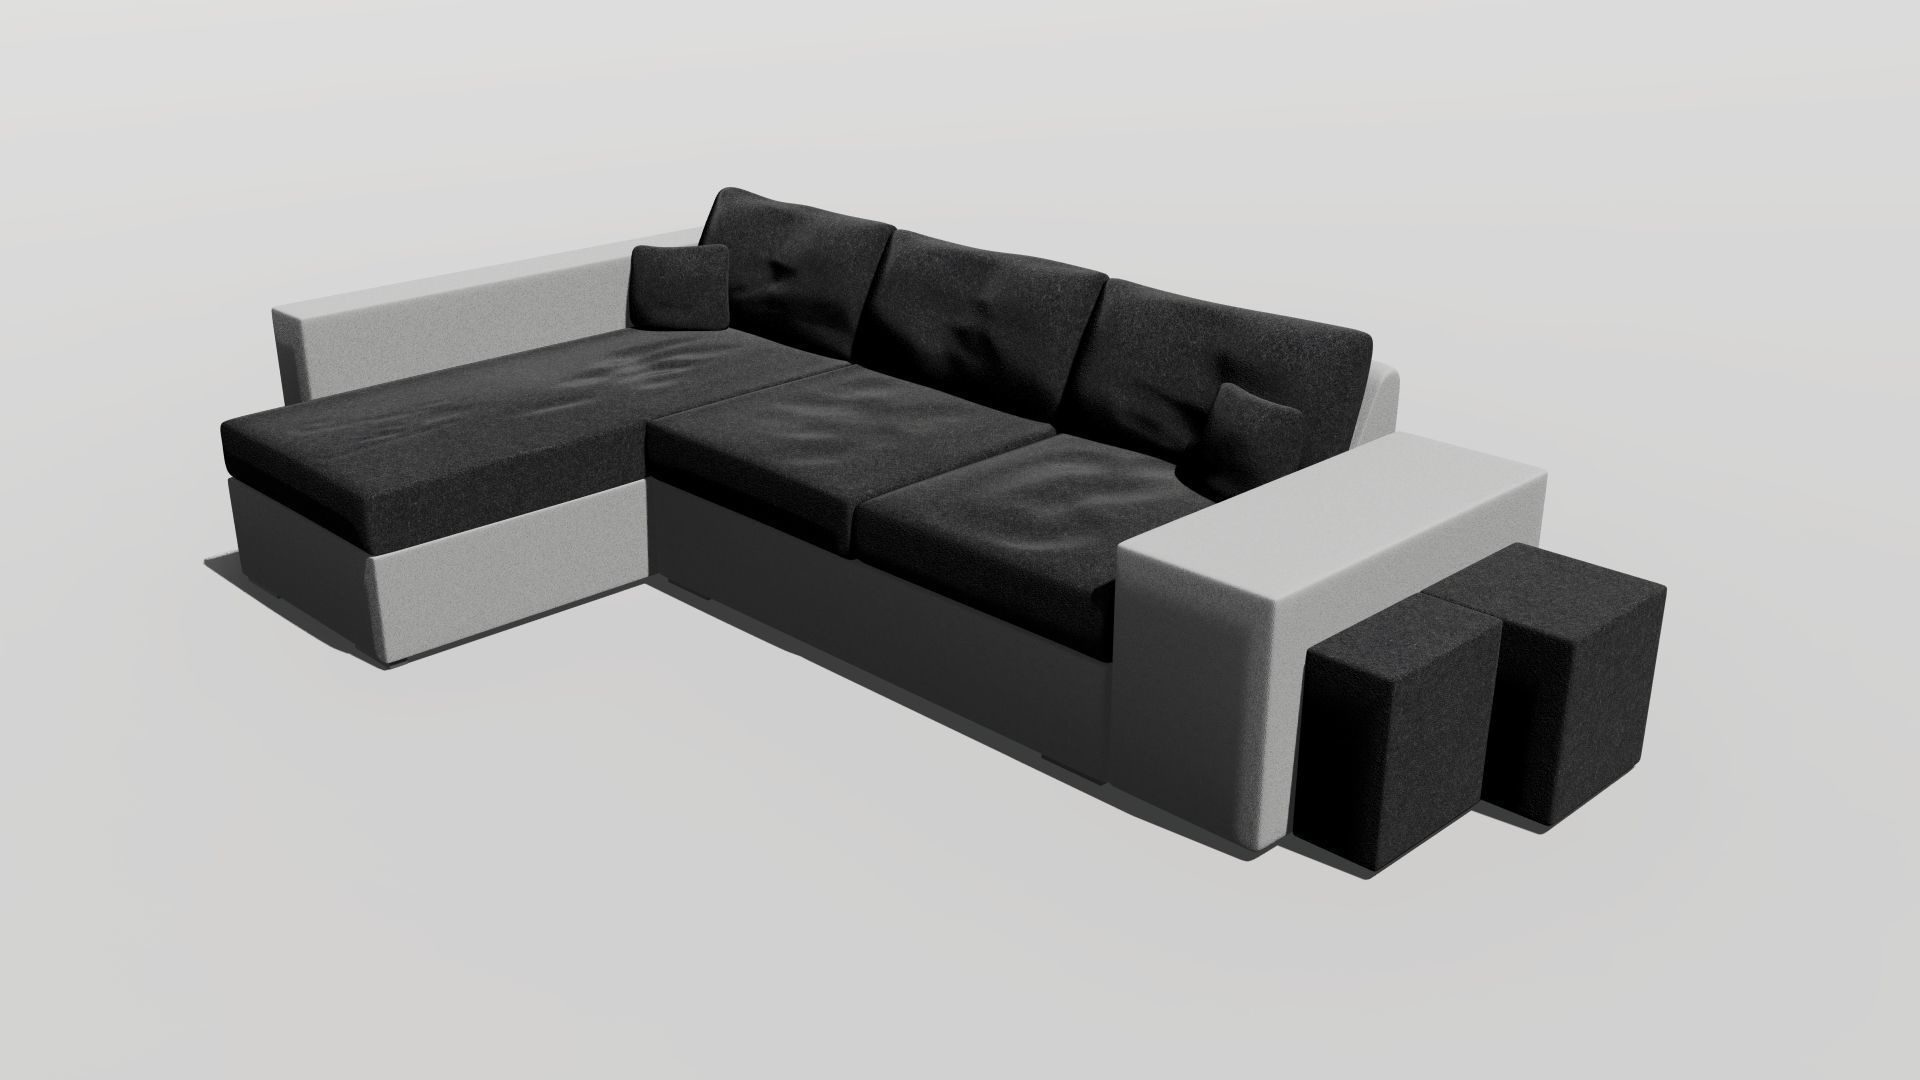 Sofa Salon Xtd6 fortable Corner sofa Livingroom 3d Model